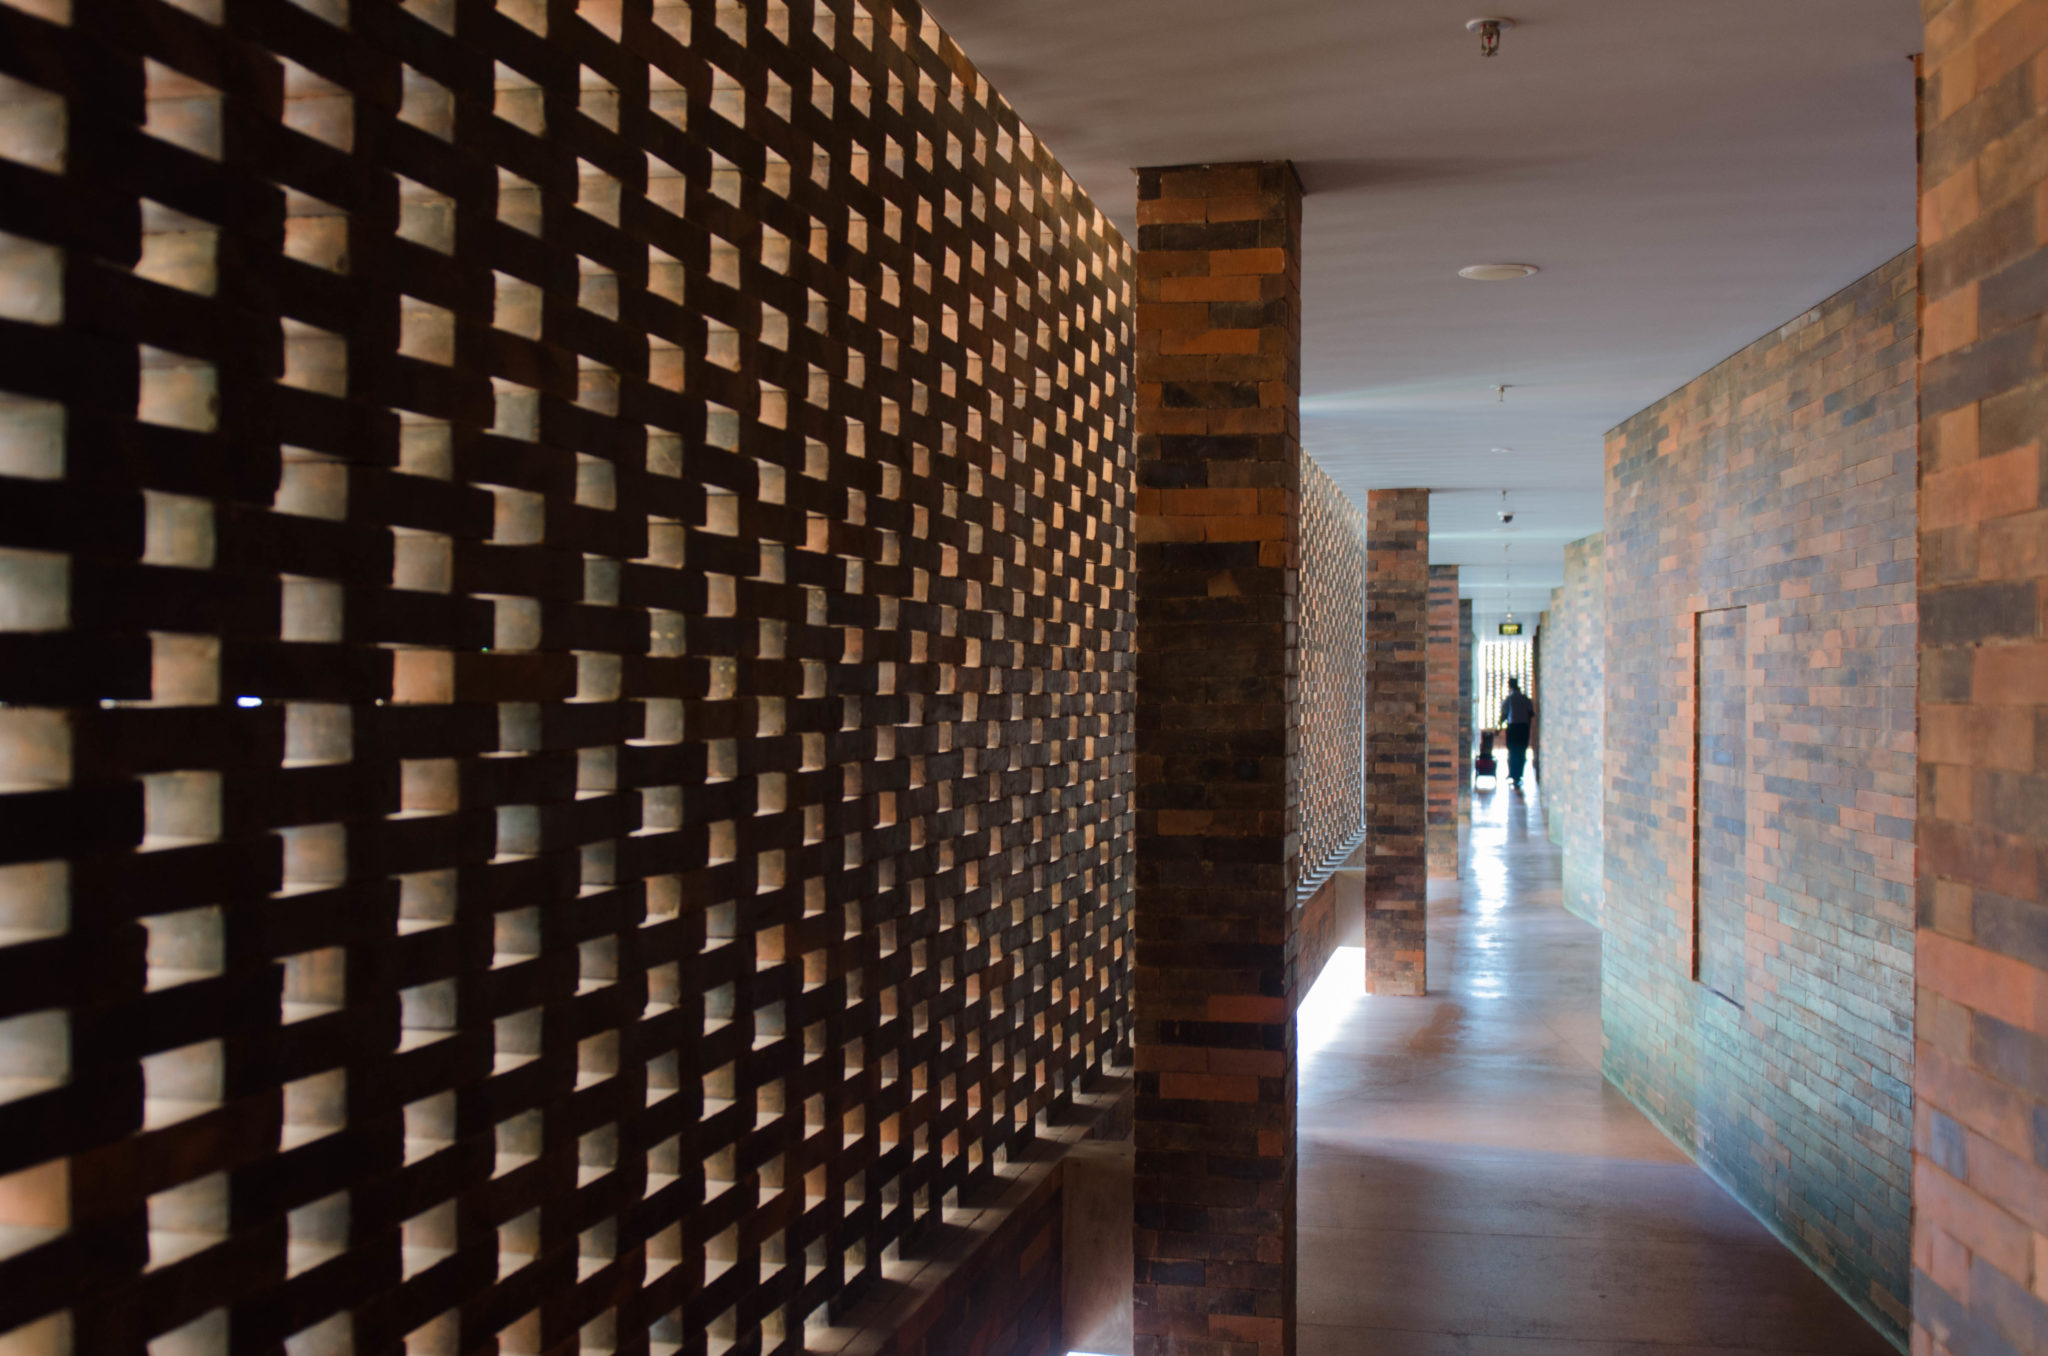 Katamama Hotel Bali: When the way to your room become a dream hallway.